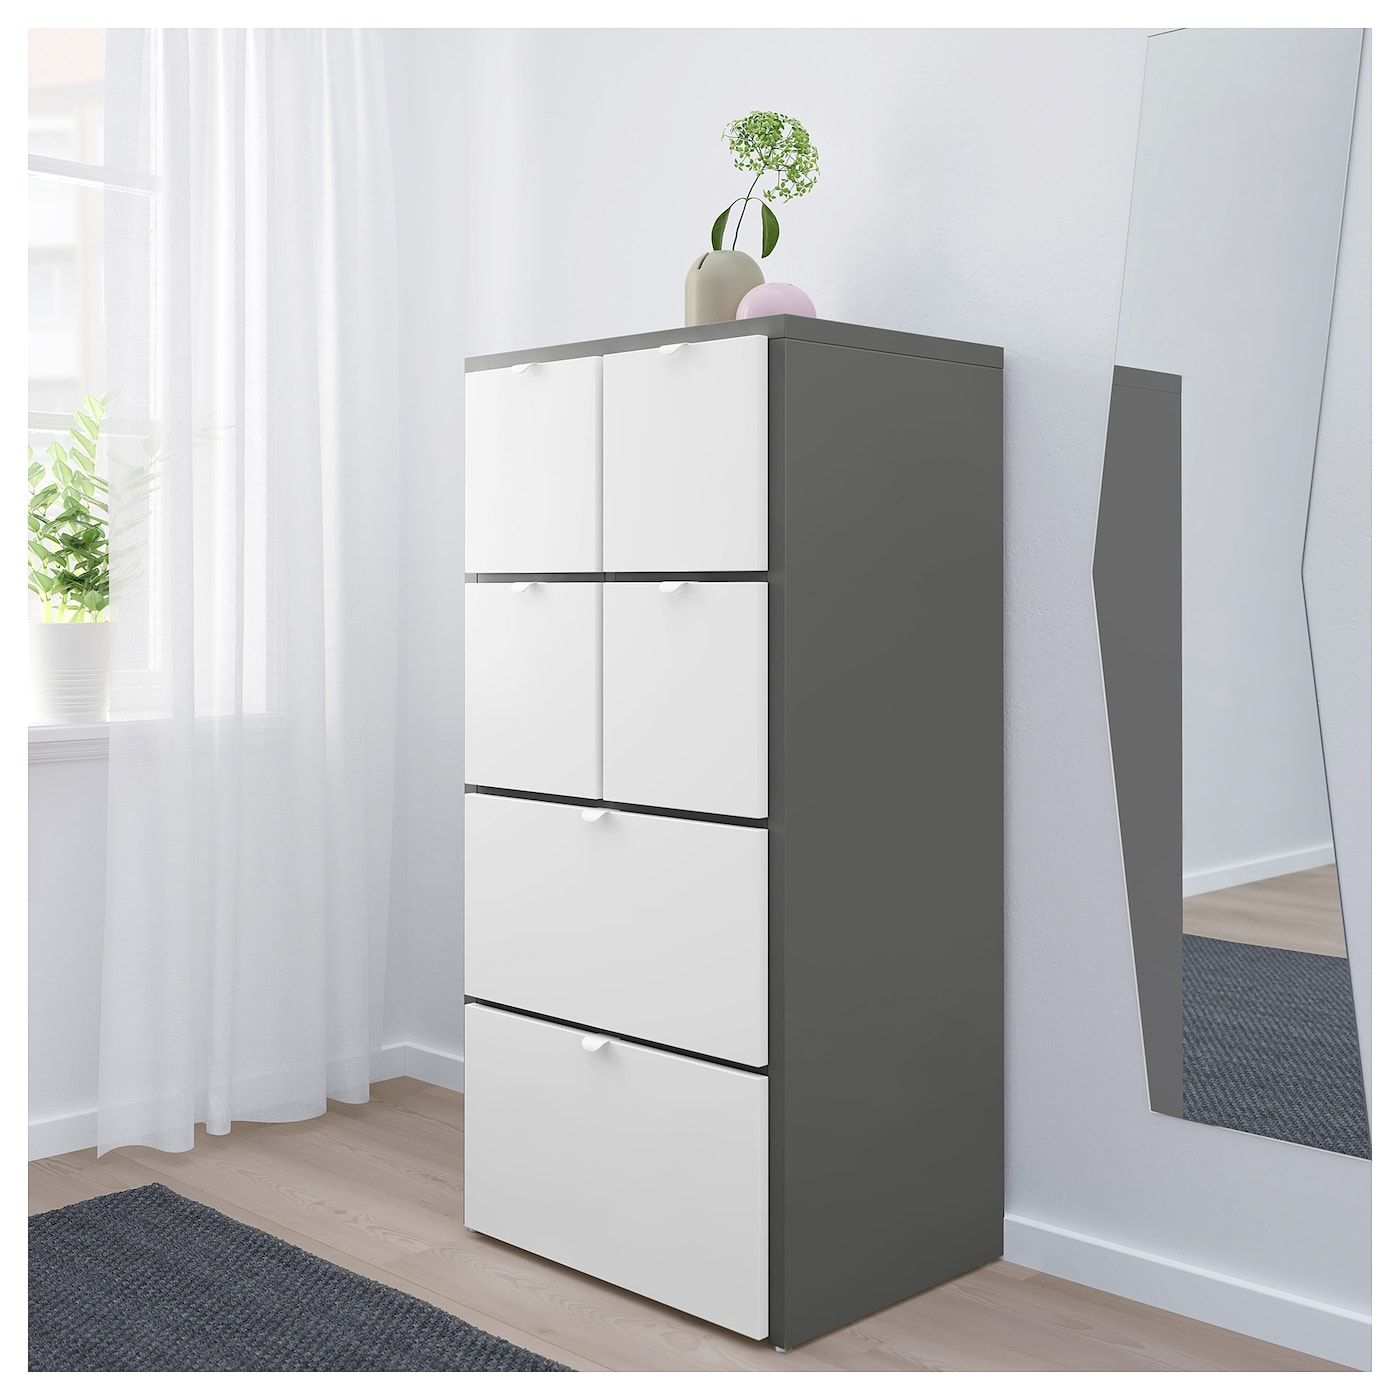 Visthus Chest Of 6 Drawers Grey White Drawers Ikea Tall